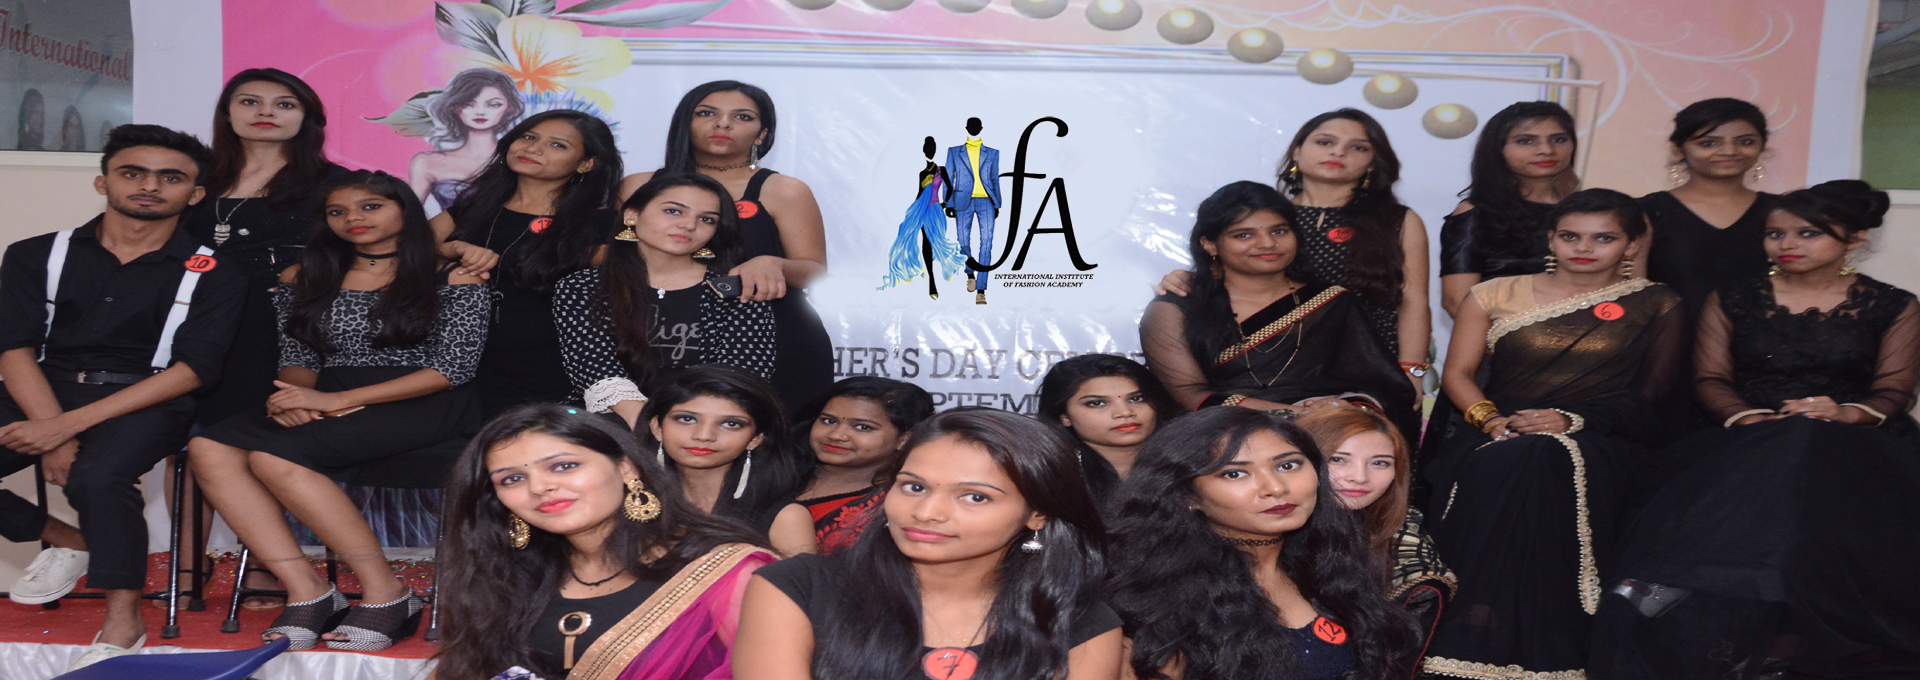 Fashion Designing Diploma Course Two Year Fashion Diploma 2 Year Fashion Course Fees Fashion After 10th Fashion After 12th Fashion Designing Admission Fashion Designing Course Top Fashion Institute